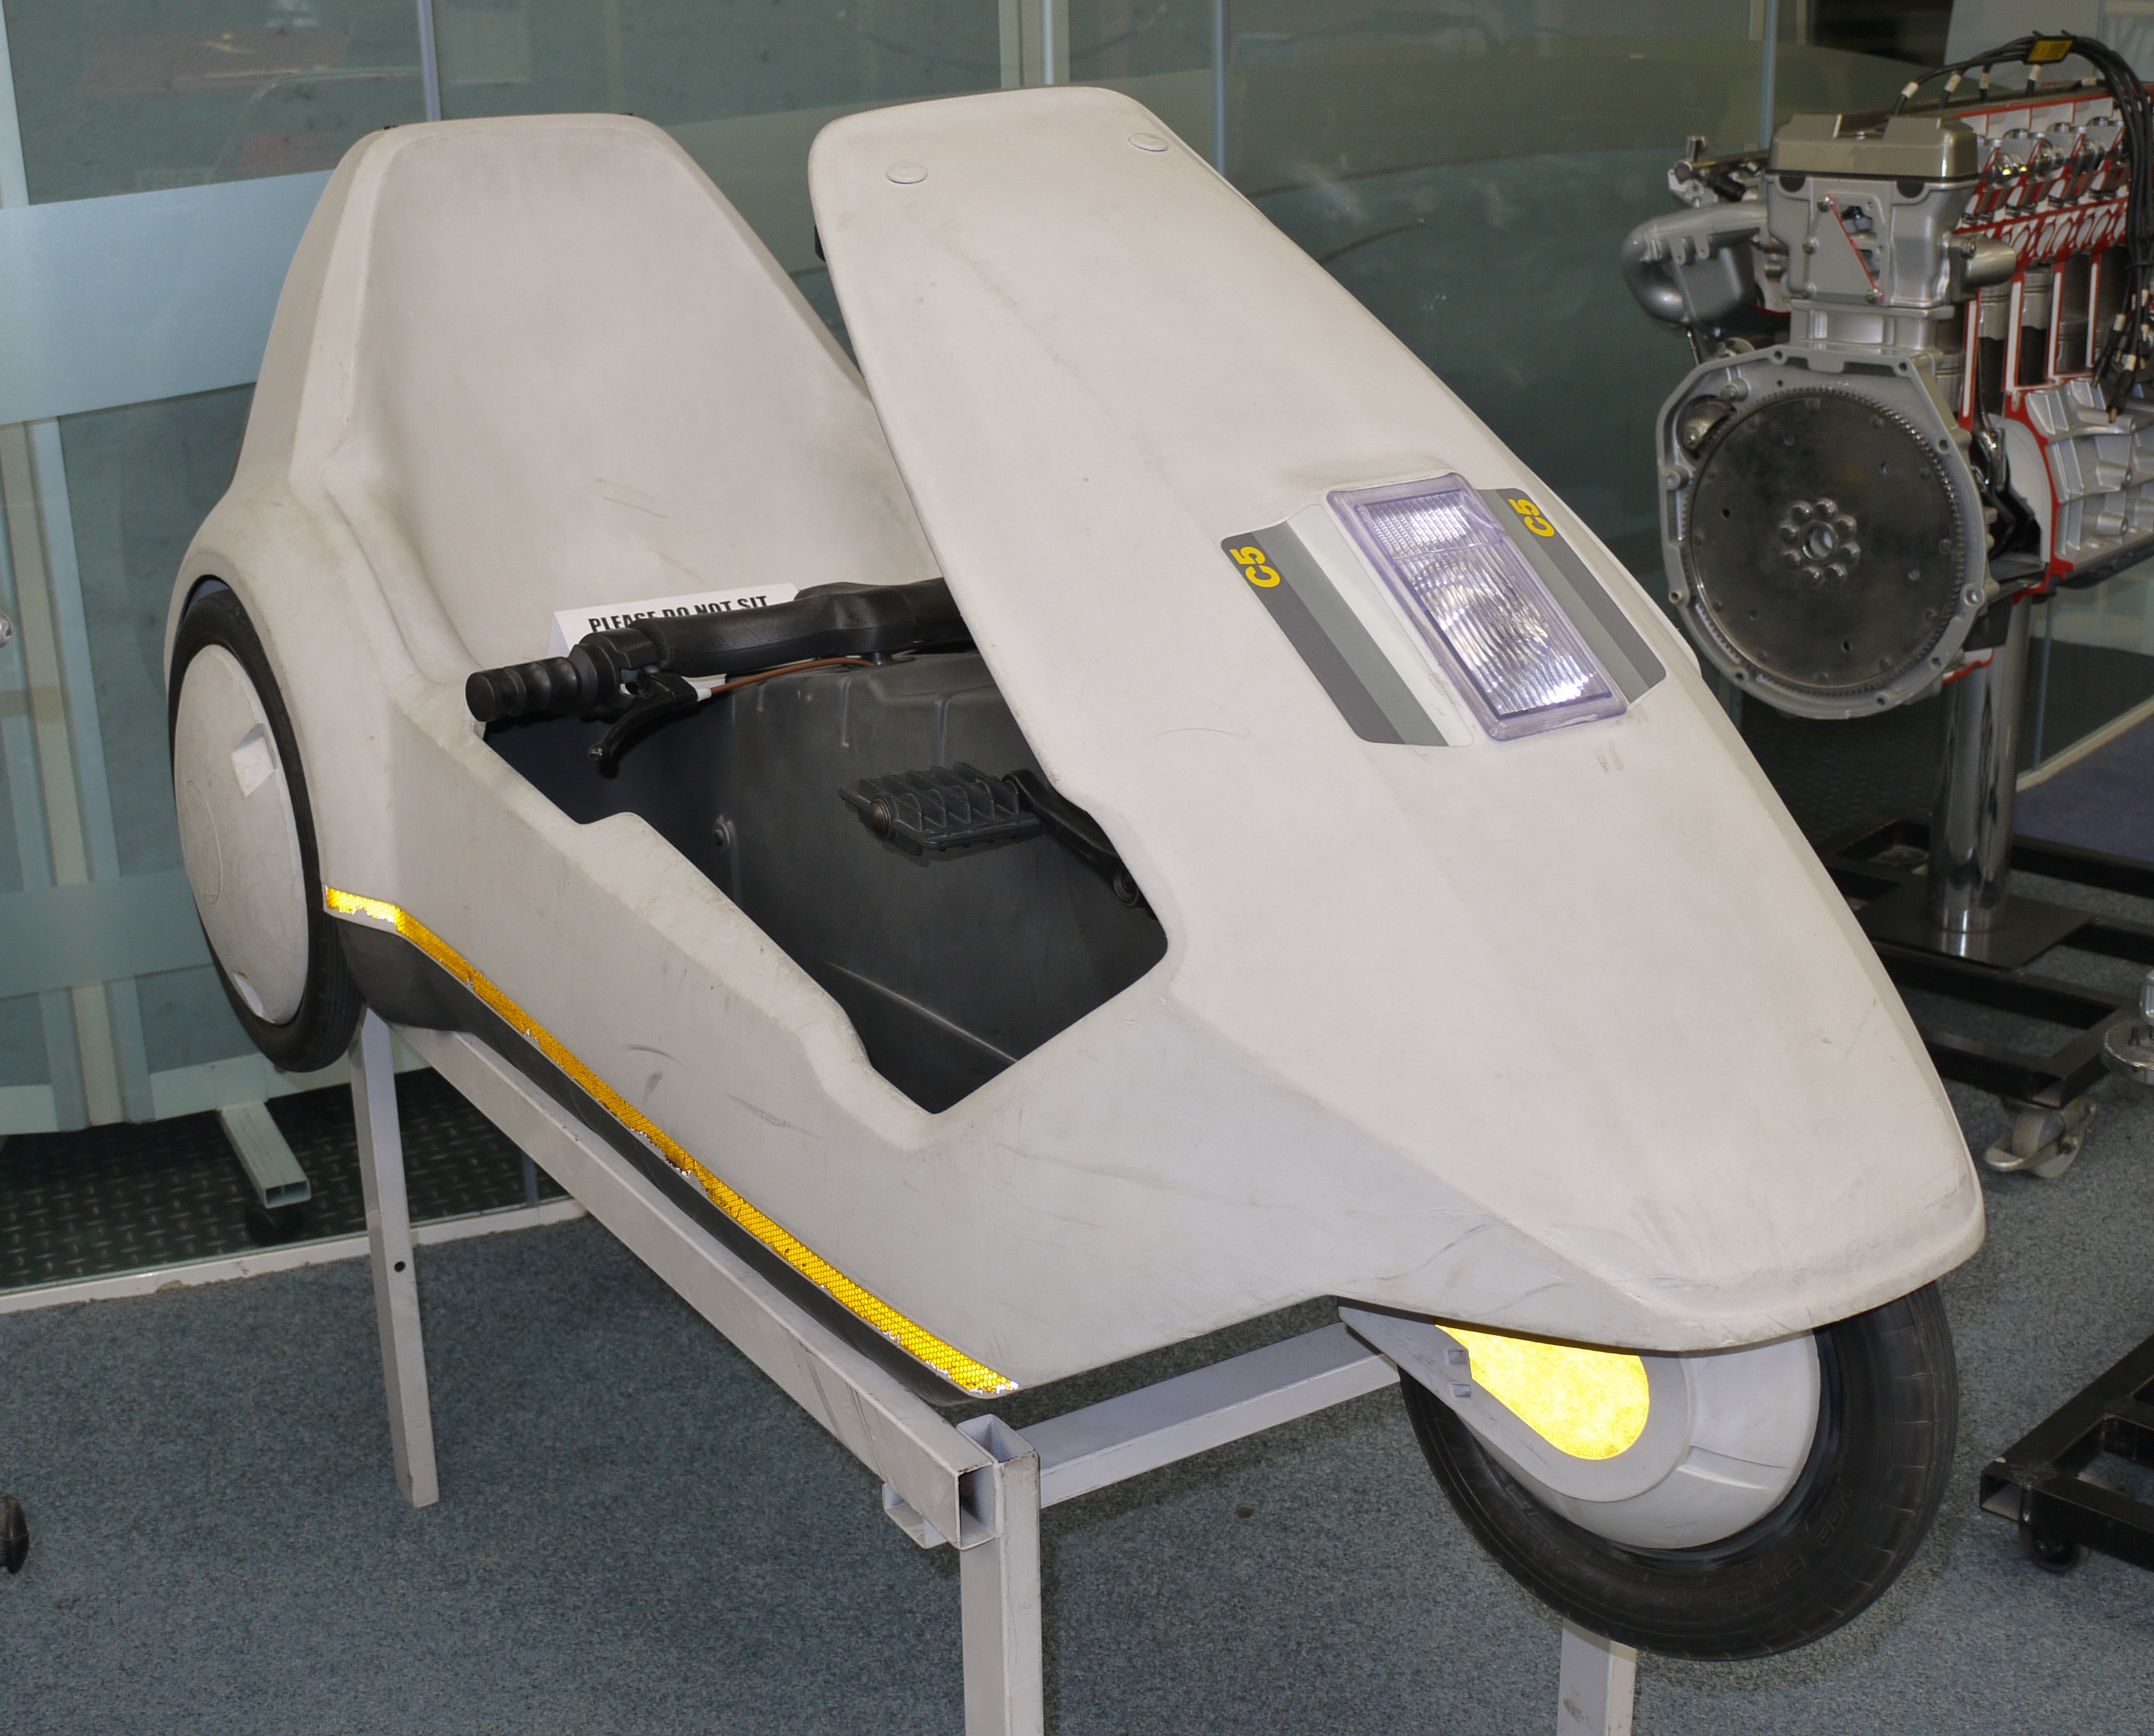 File:SinclairC5_Picture.jpg